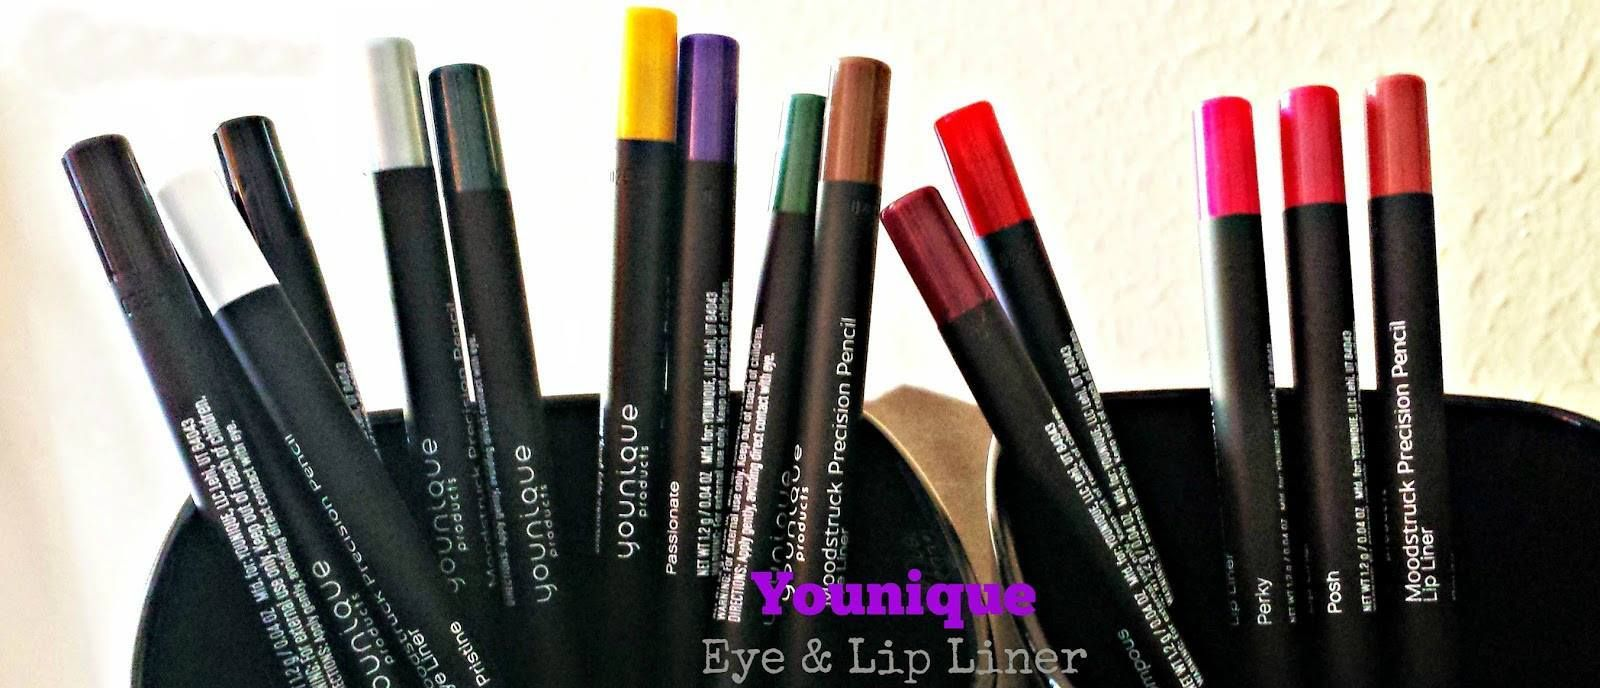 Our Liners are totally WOW! Why? They're super long lasting!! They have a soft glide-on application with excellent coverage and color and they're not waxy!! And best part? They're WATERPROOF and smudge proof!! Now, that's what I'm talking about!  INGREDIENT HIGHLIGHTS • Jojoba oil • Vitamin E • Vitamin C derivative • Hydrogenated Cottonseed Oil $15/each or 3/$40